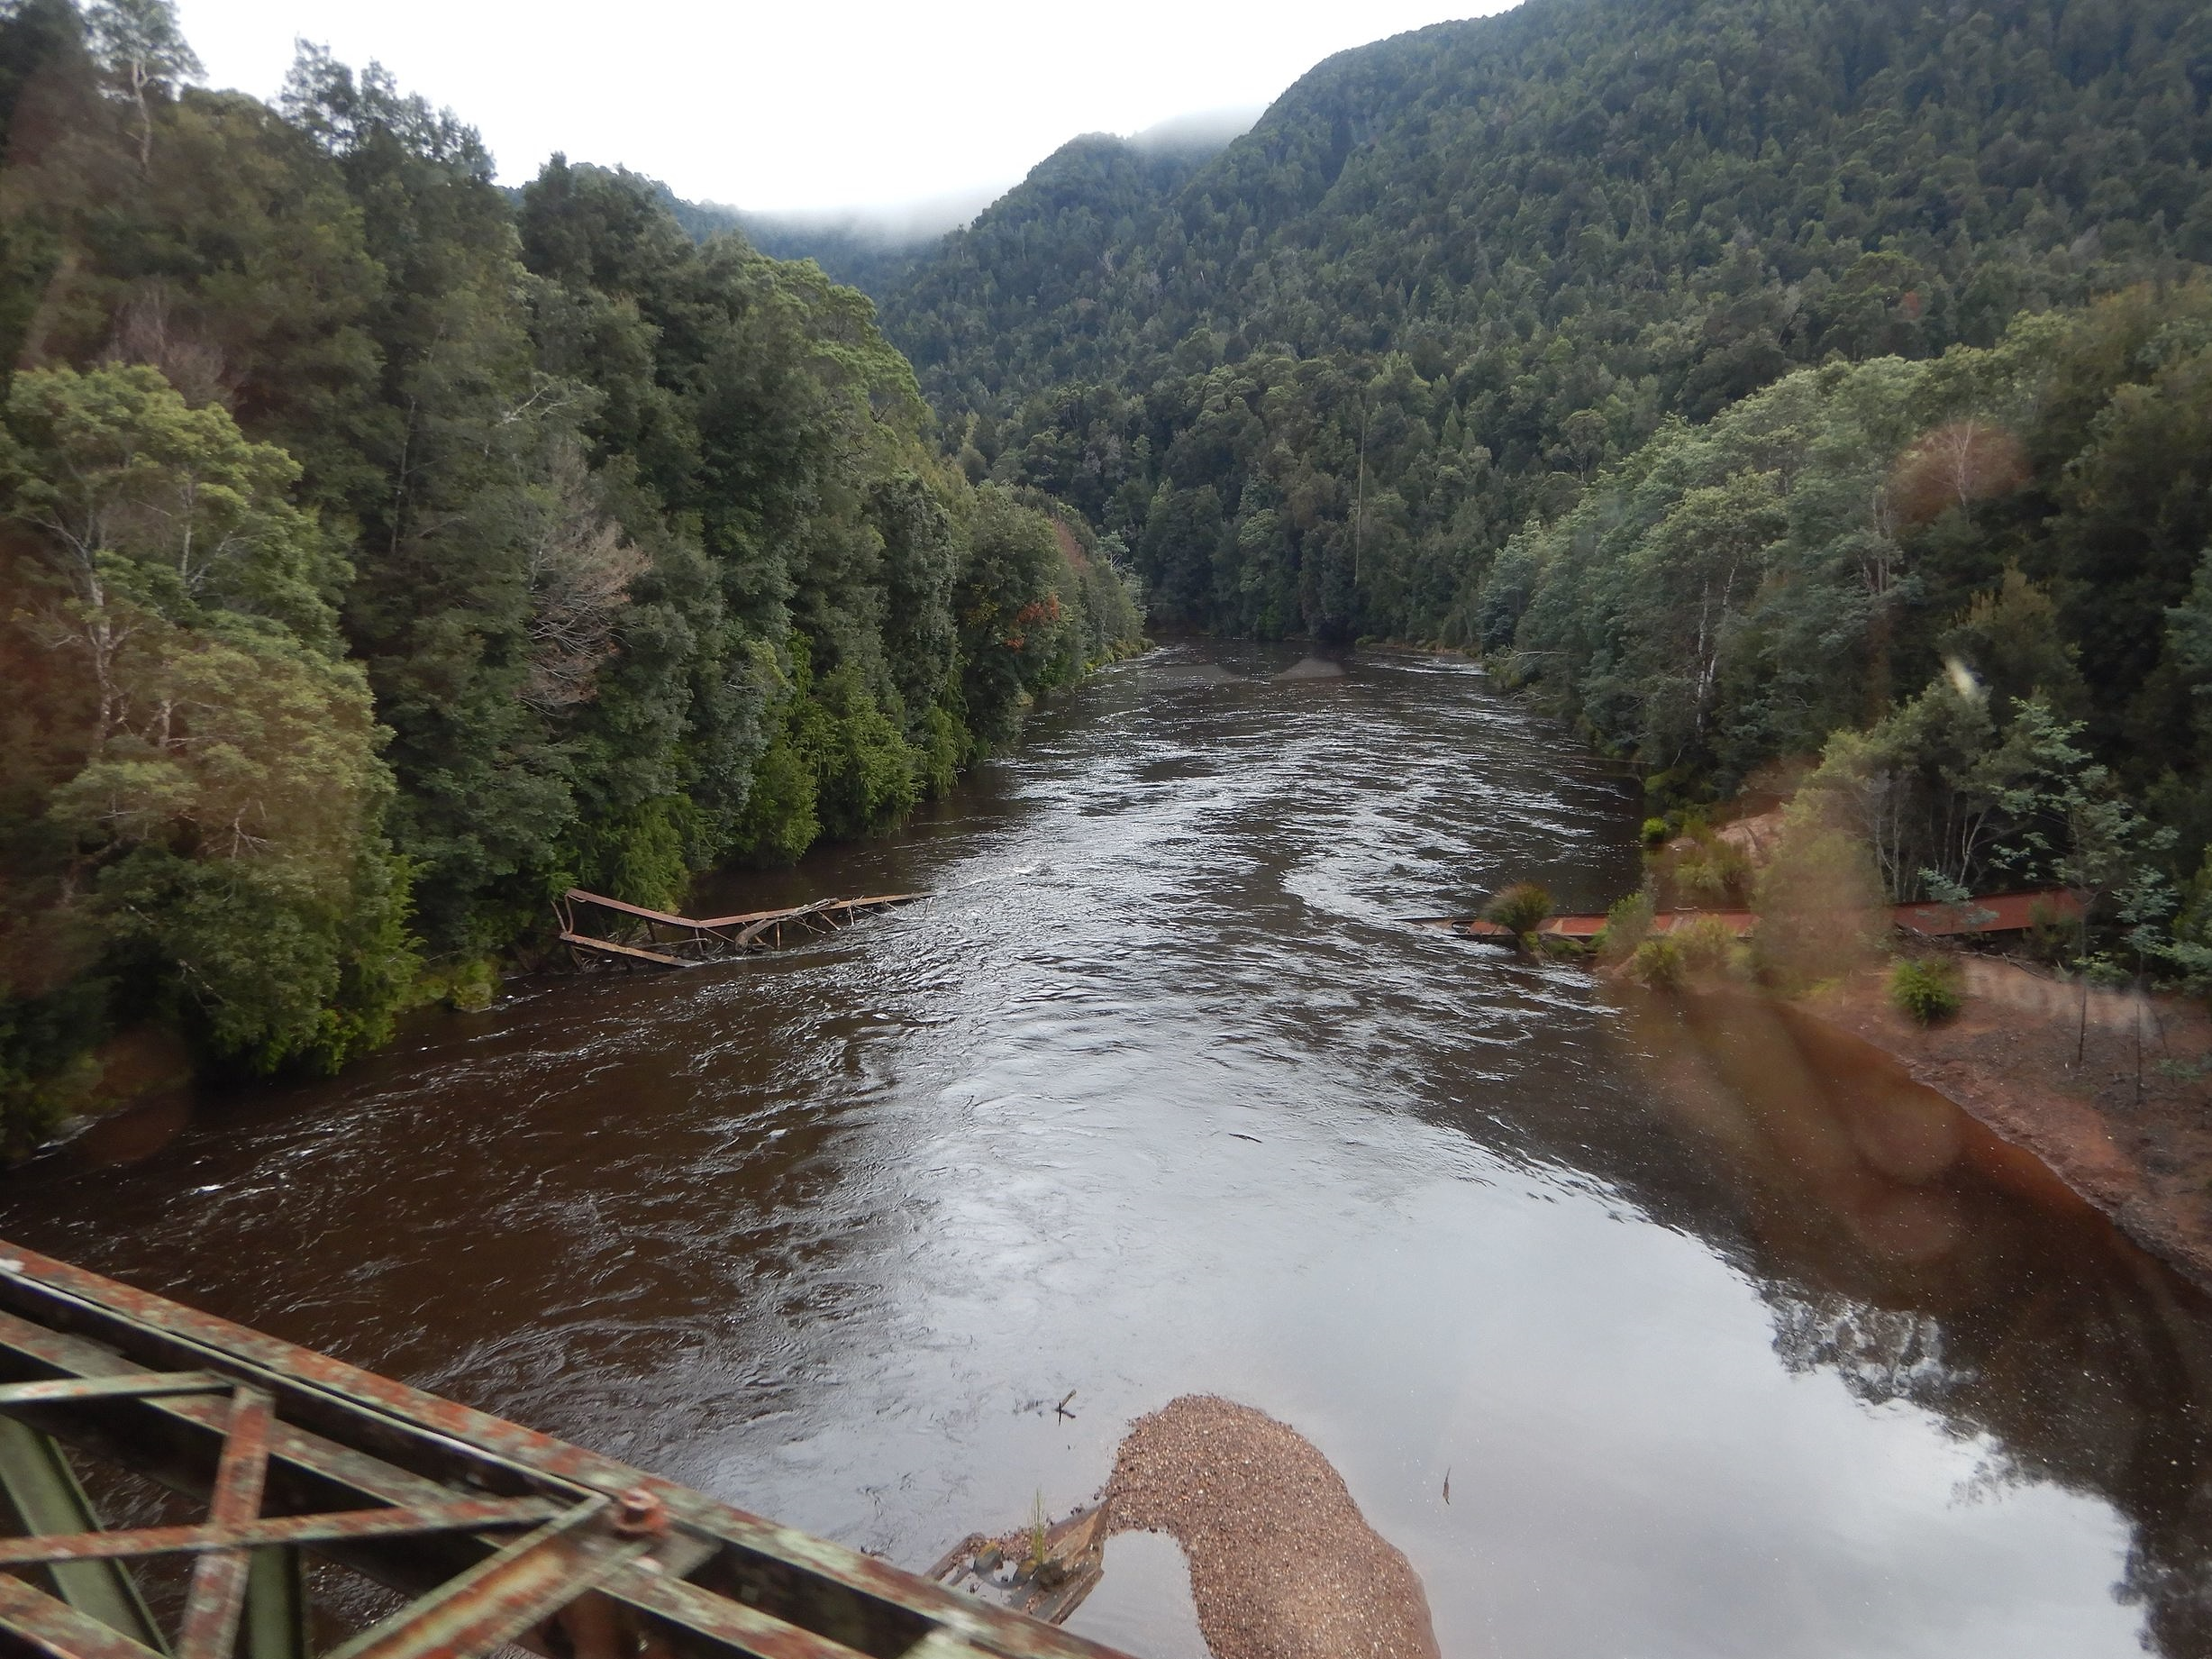 crossing a bridge over the king river